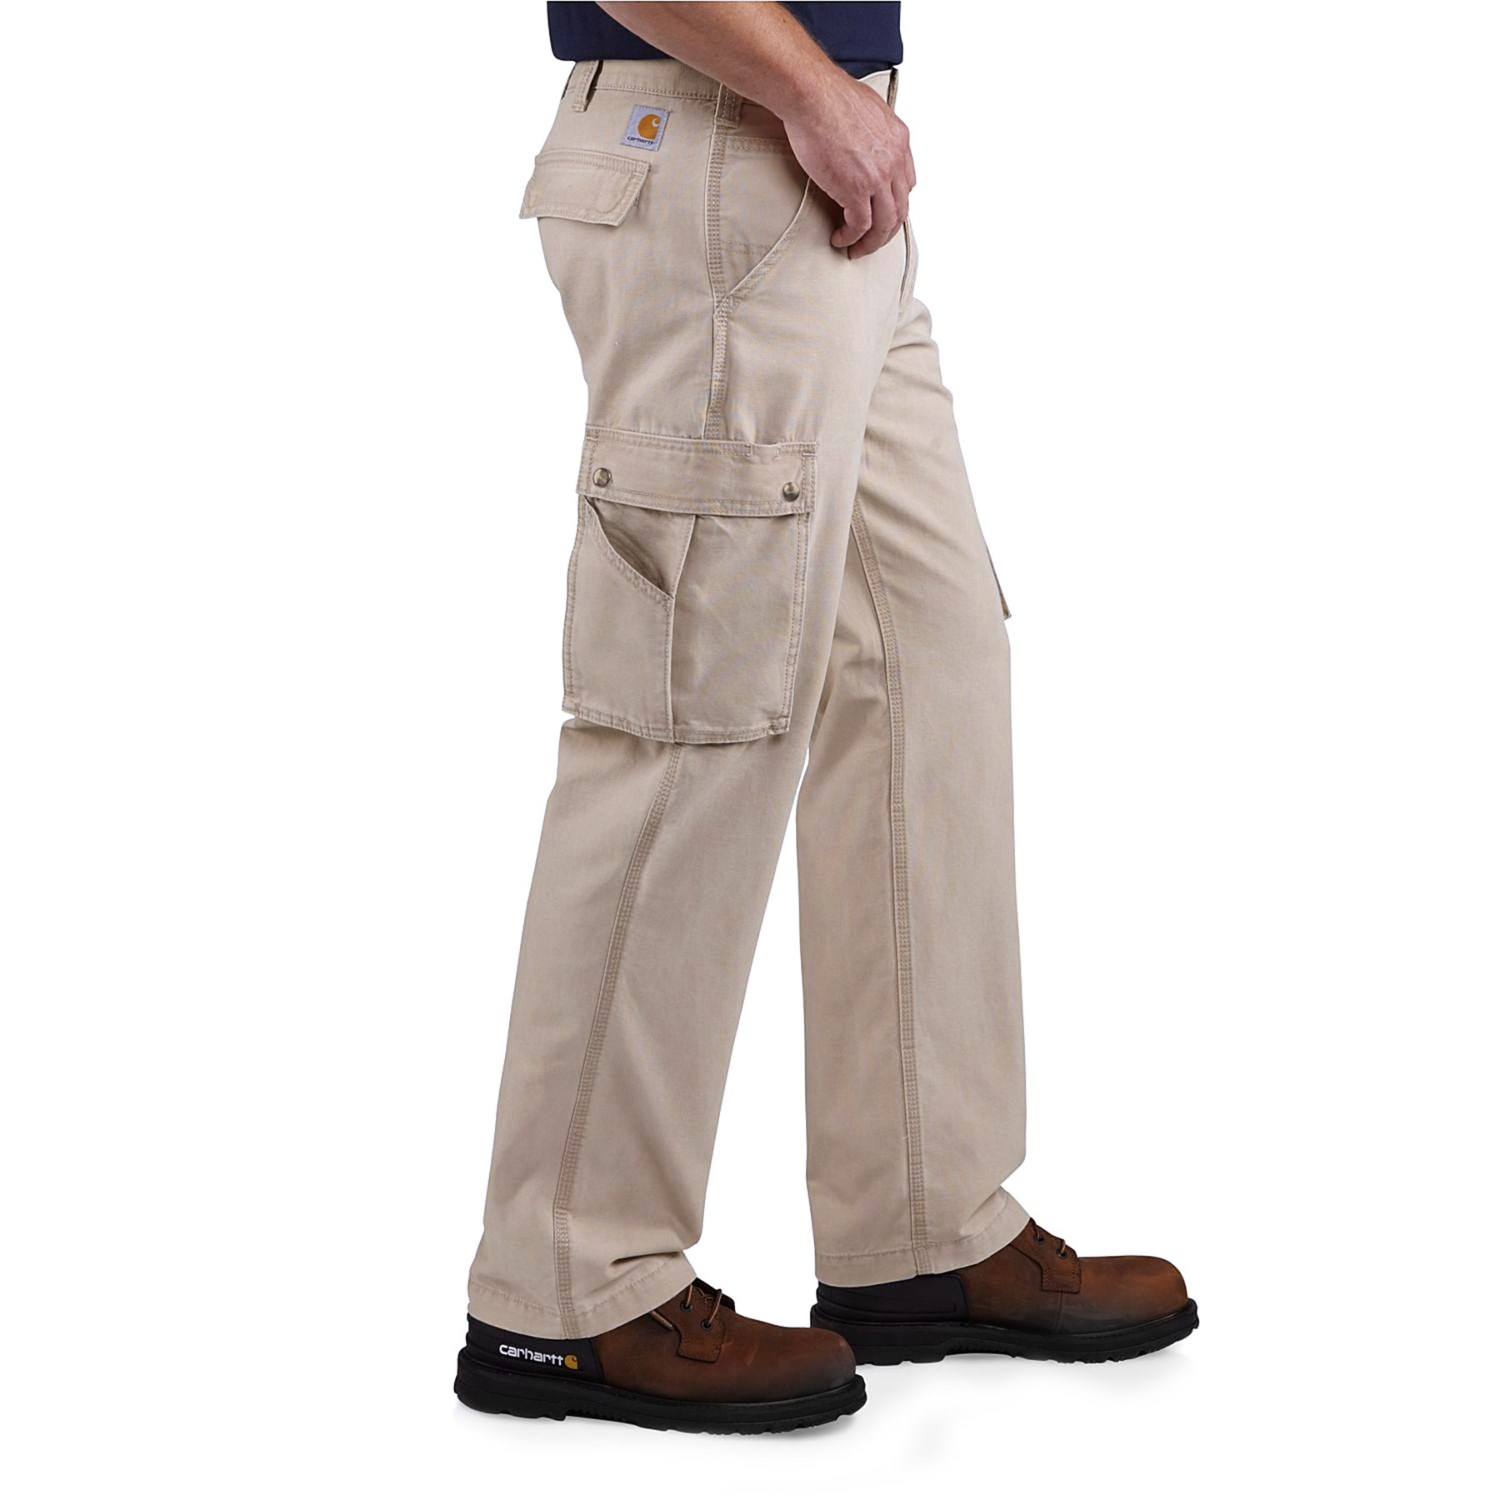 Carhartt Rugged Cargo Pants (For Men)